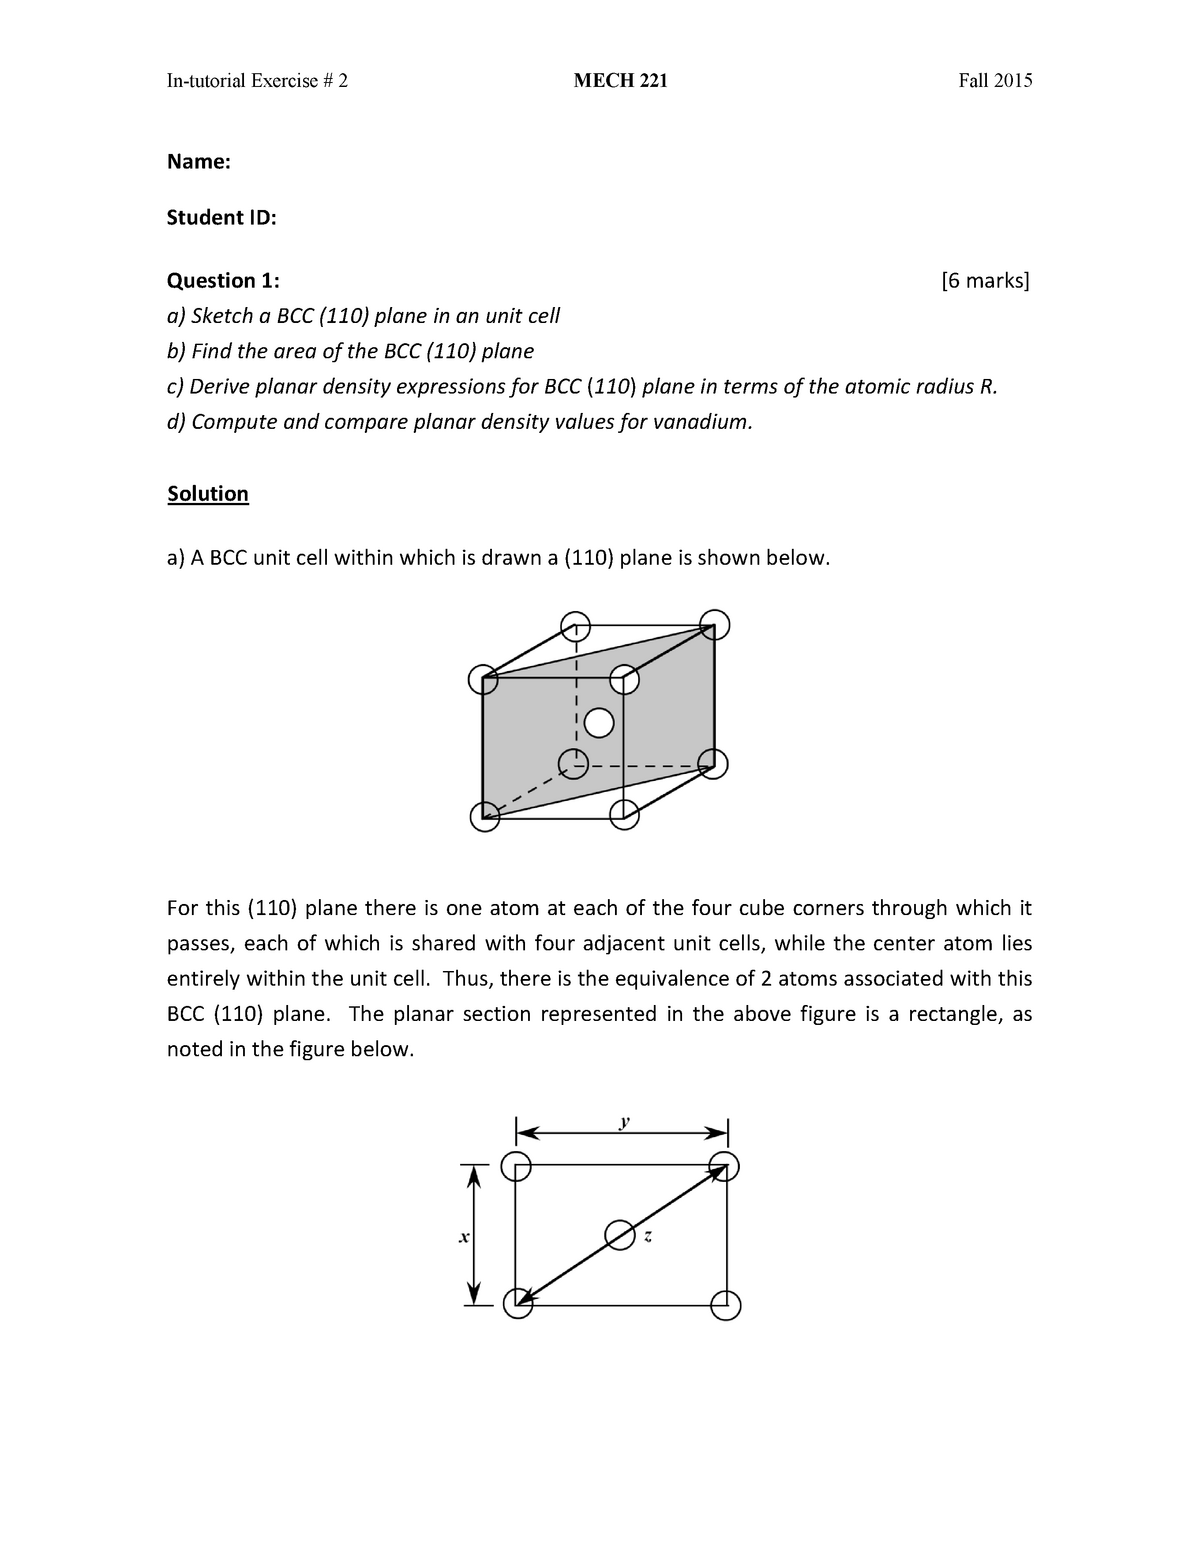 Practical - in-tutorial exercise # 2 - MECH 221: Materials Science